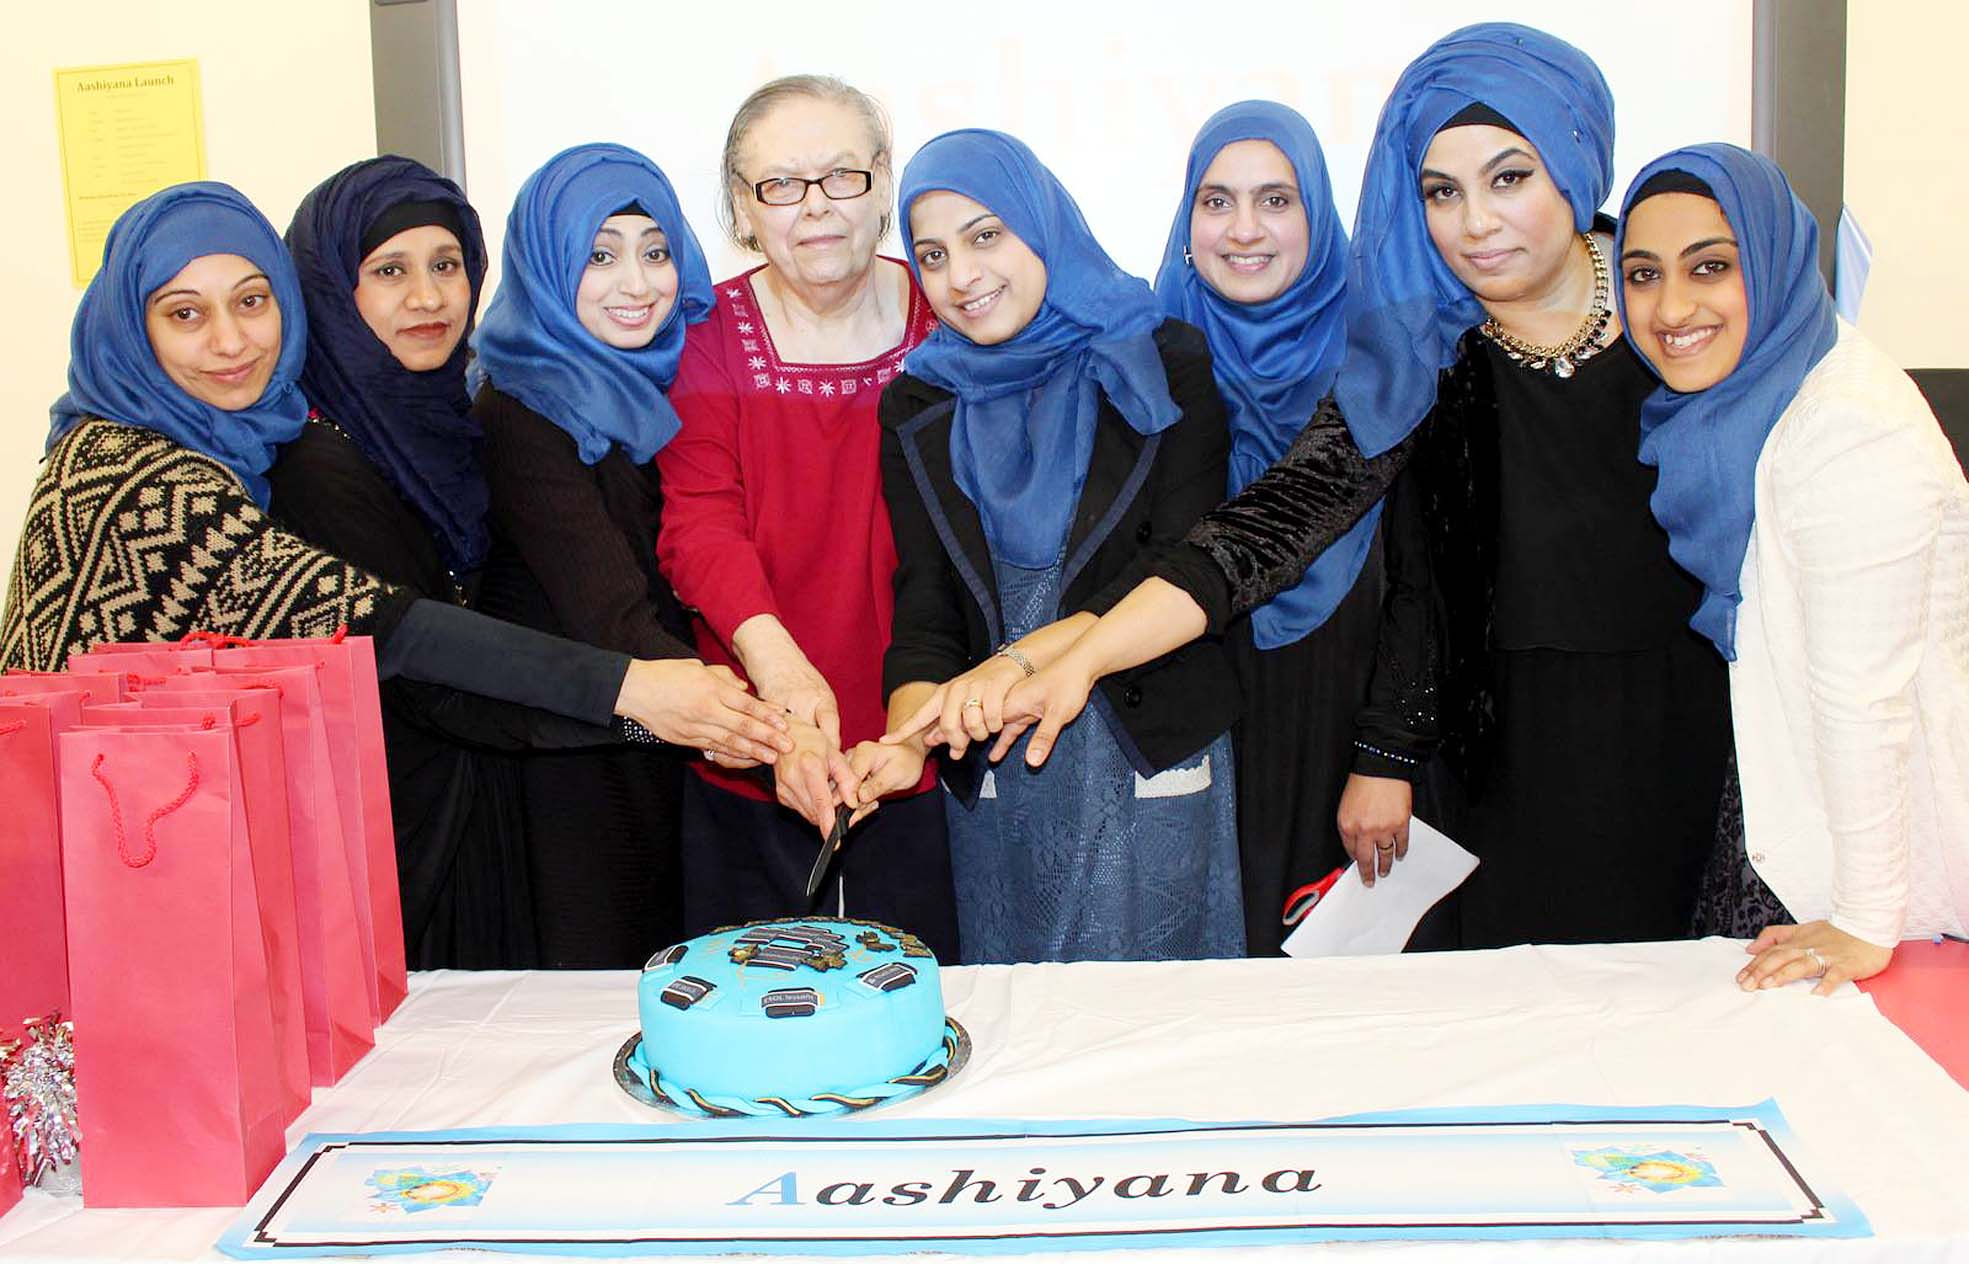 Aashiyana women's group launched